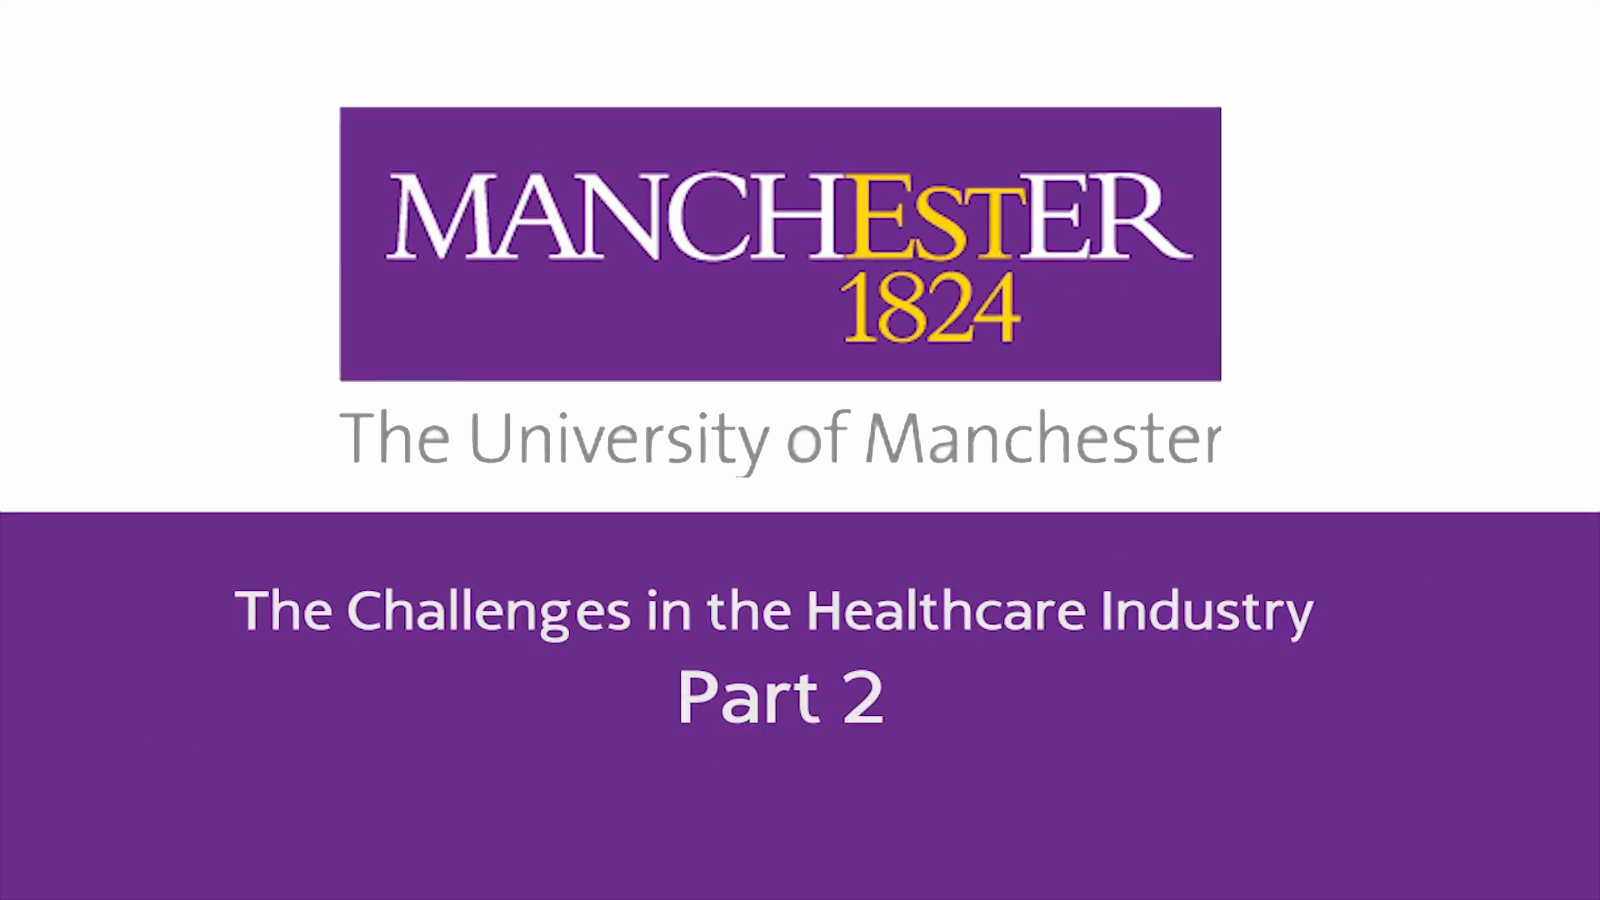 The Challenges in the Healthcare Industry - Part 2